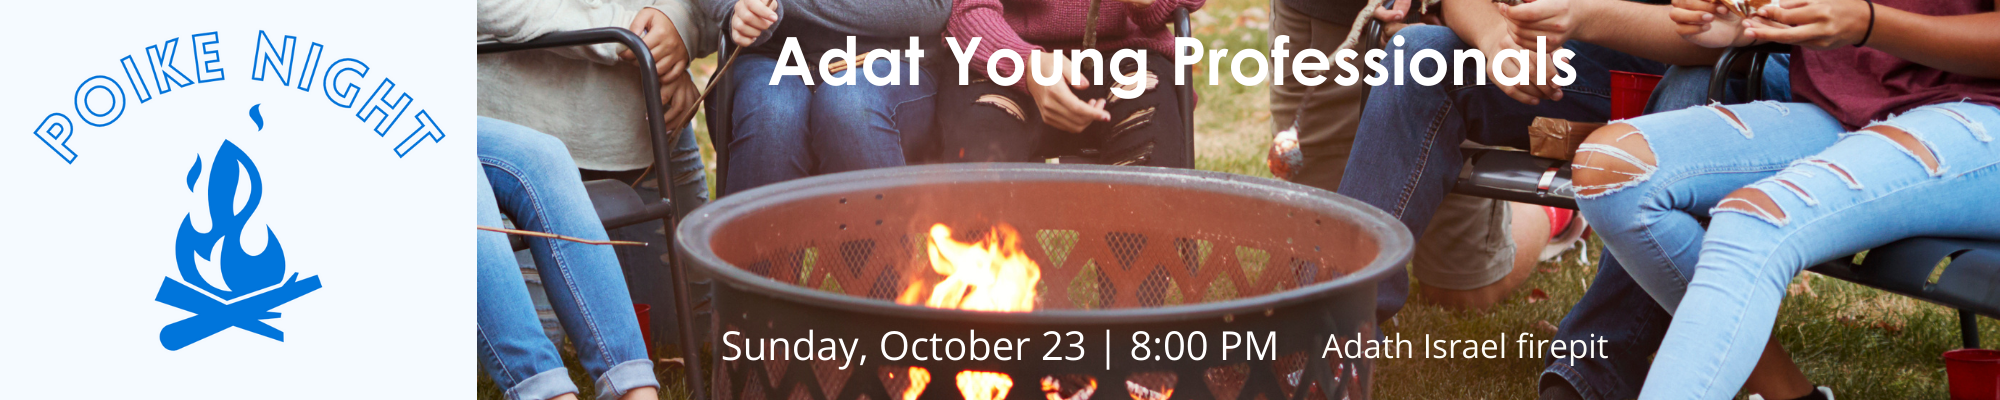 """<a href=""""https://www.adath-israel.org/event/adatpoikenight""""                                     target="""""""">                                                                 <span class=""""slider_title"""">                                     Adat Young Professionals event                                </span>                                                                 </a>                                                                                                                                                                                       <span class=""""slider_description"""">Join Adat Young Professionals for an Israeli-style bonfire featuring poike - a warm, hearty stew cooked over the fire. Plus, smores, drinks, and a sing-along!</span>                                                                                     <a href=""""https://www.adath-israel.org/event/adatpoikenight"""" class=""""slider_link""""                             target="""""""">                             Learn more and register here.                            </a>"""